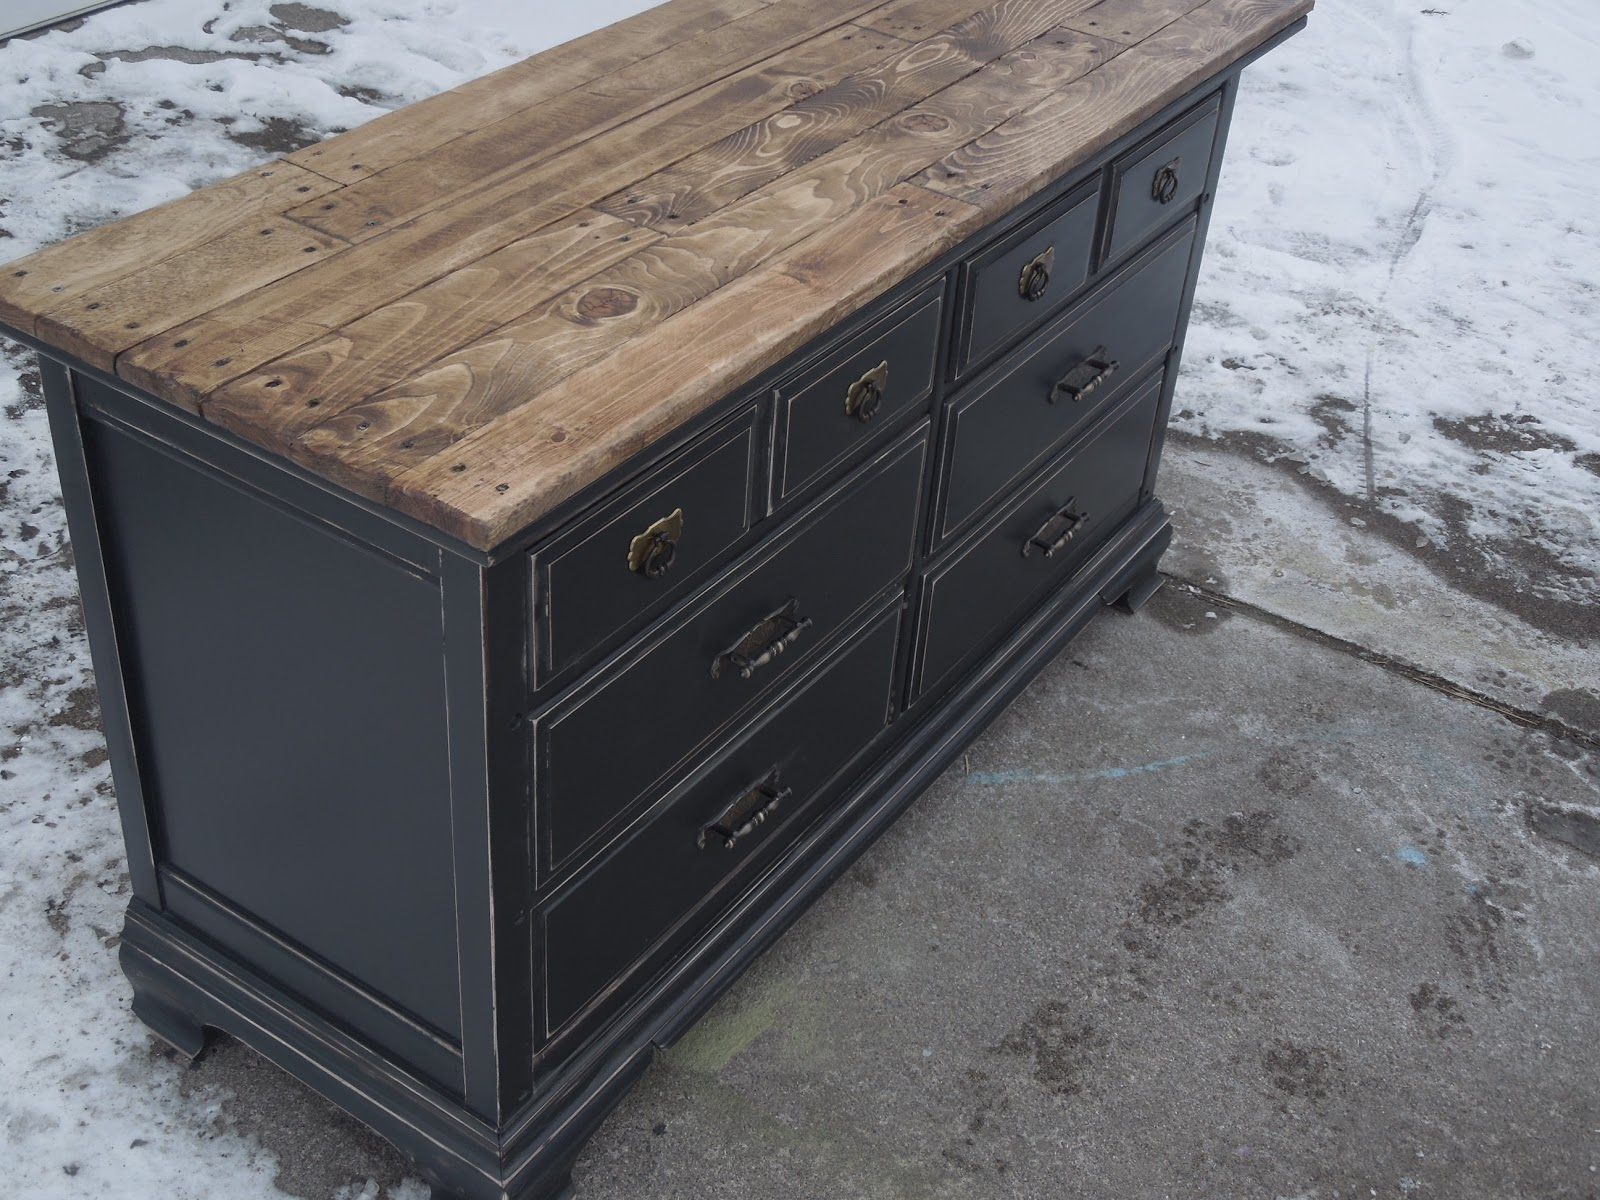 Tattered Lantern Black Dresser Sold Will Deliver Within 40 Miles For